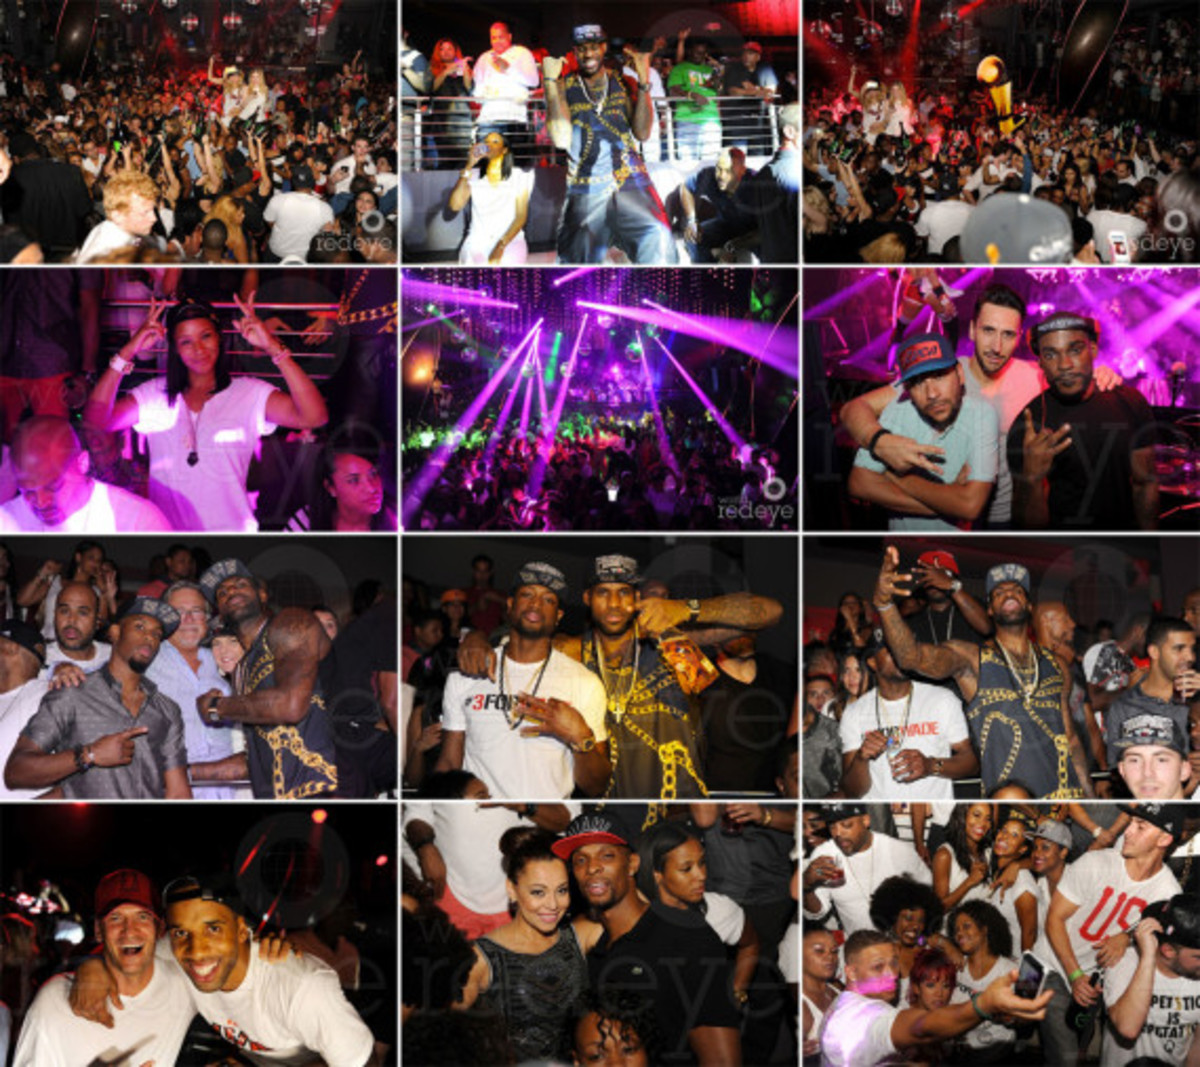 Miami Heat - 2013 NBA Championship After Party at STORY | Event Recap - 0